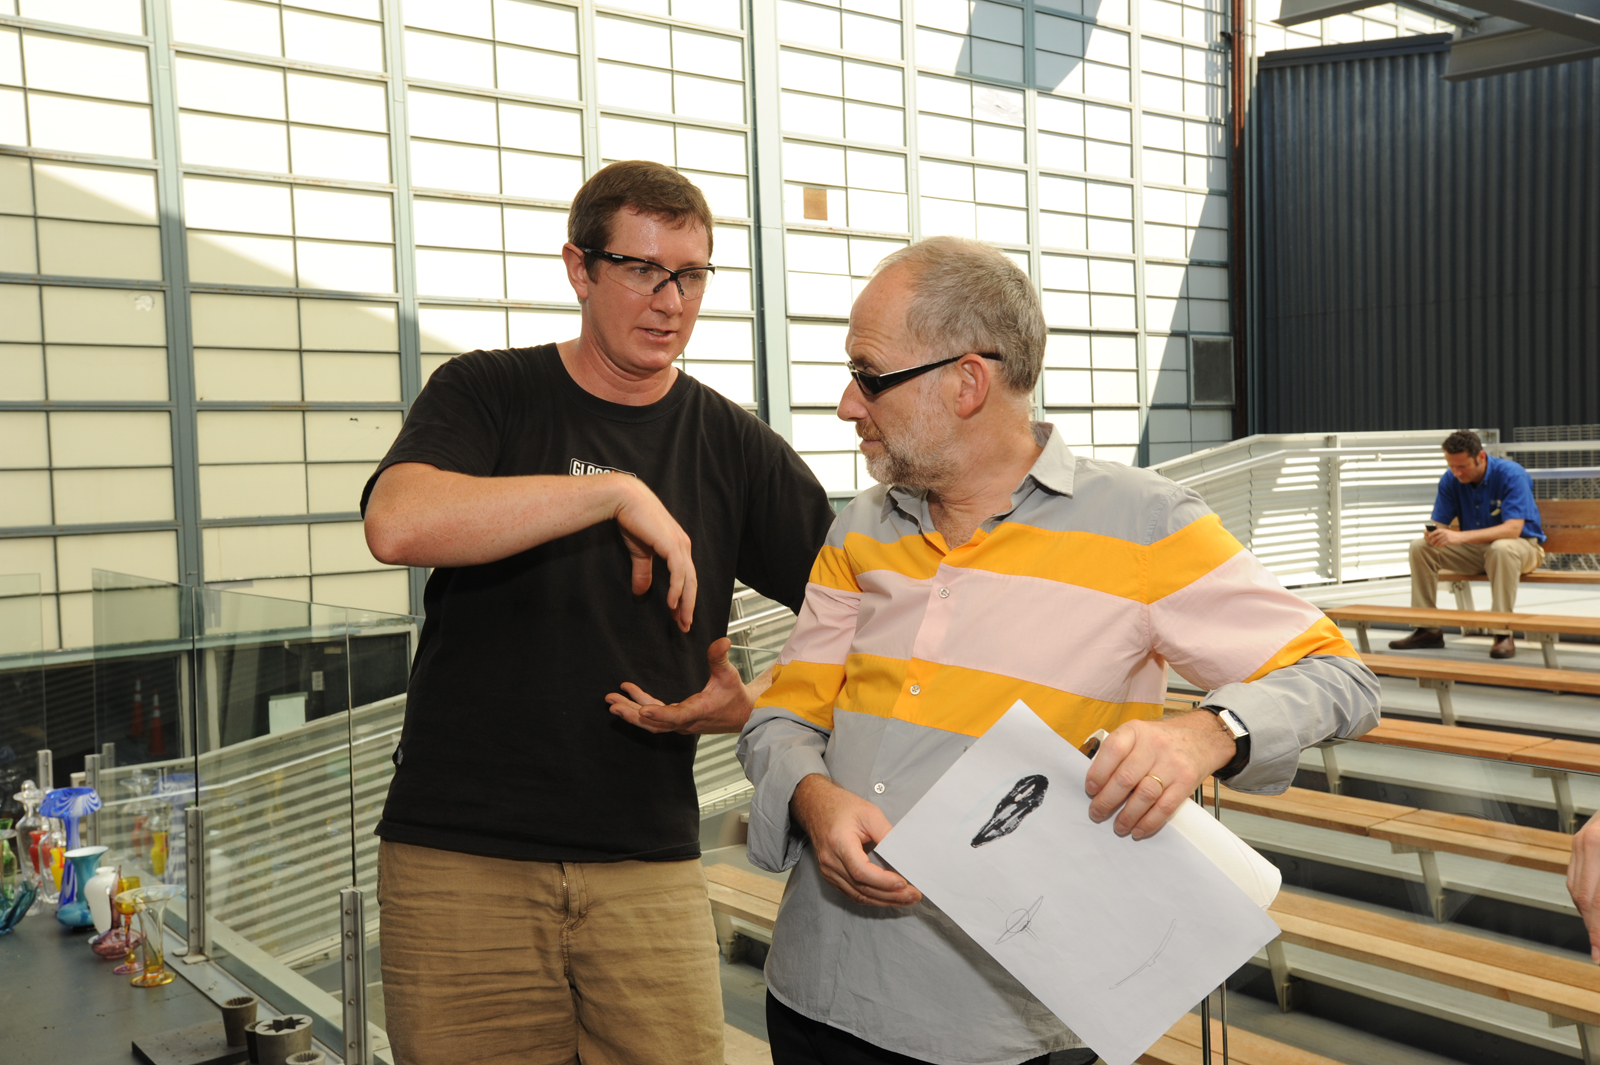 Gaffer Aaron Jack works with designer Constantin Boym in a GlassLab Design Session in Corning, NY, August 2012